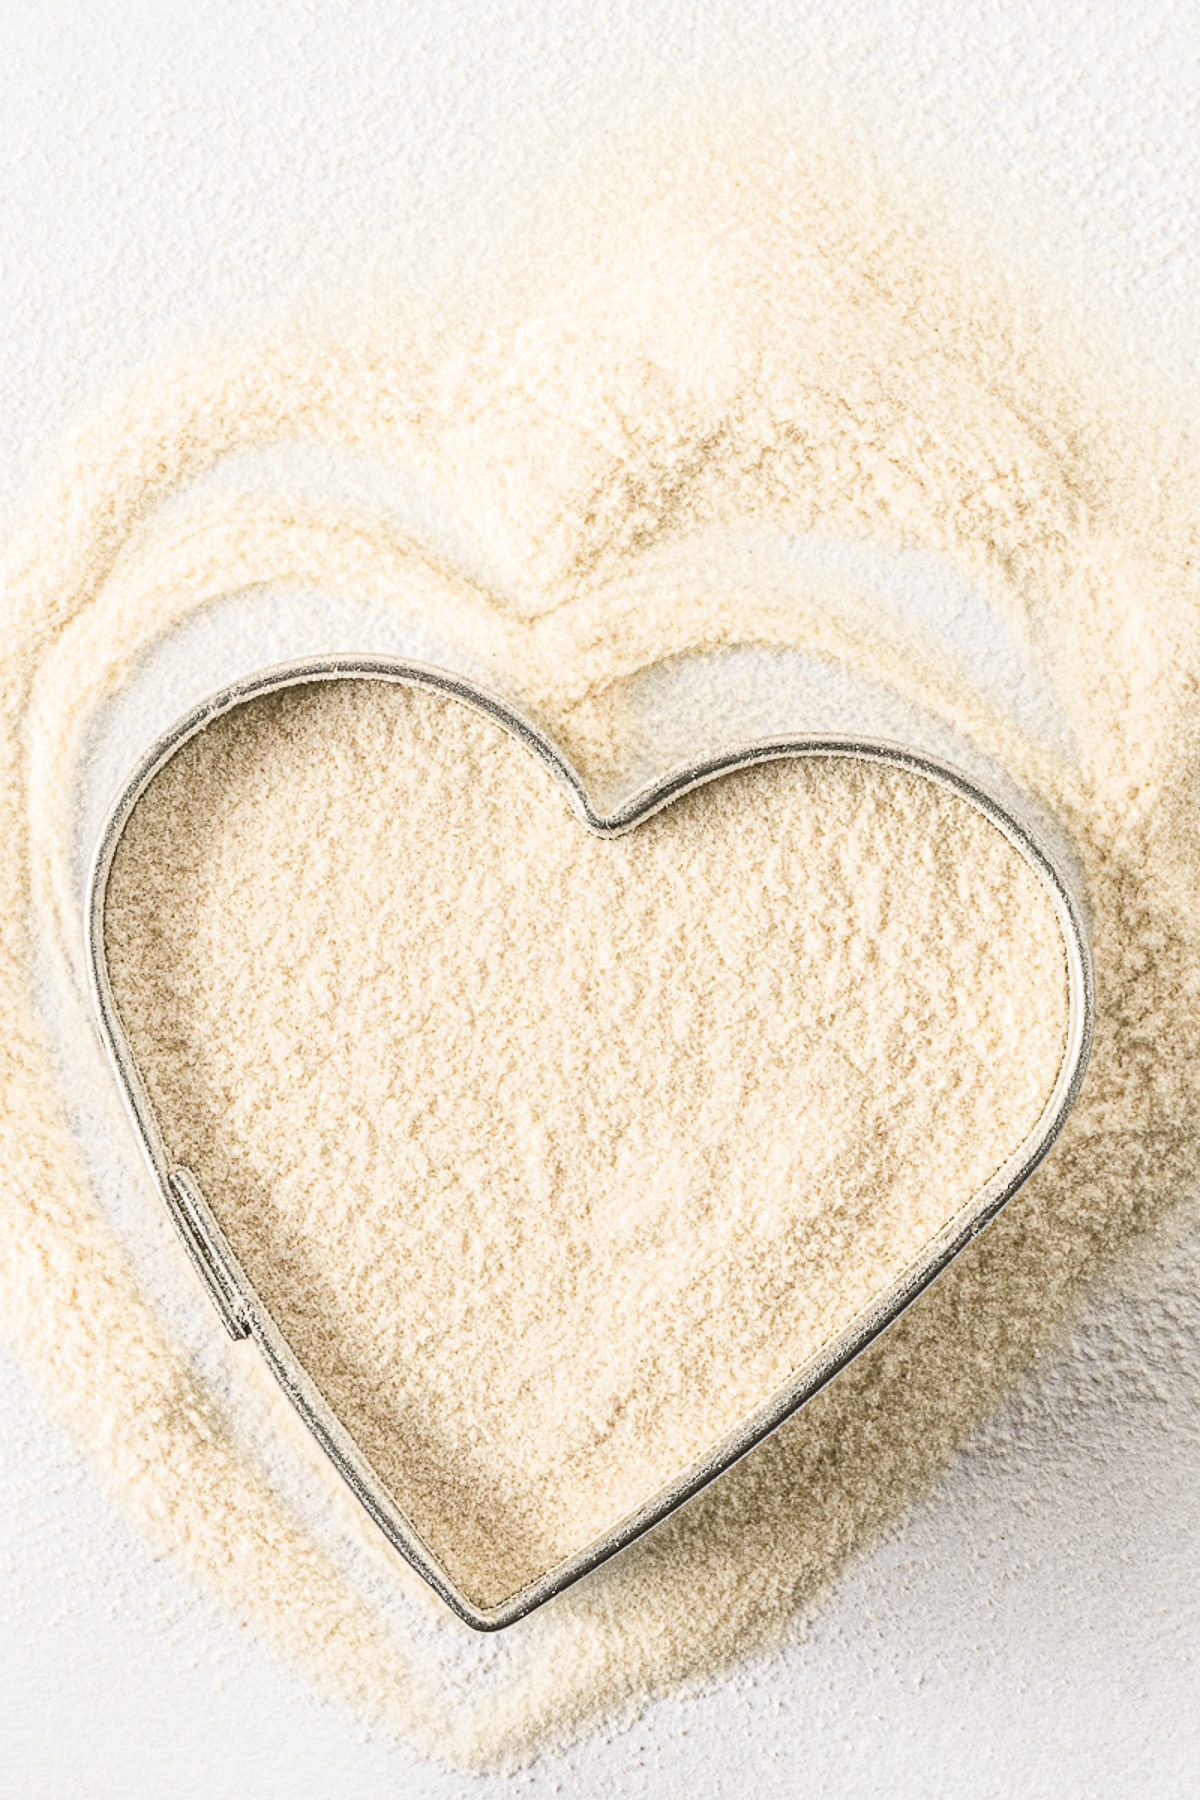 Xanthan gum spread on a bright white table with a silver heart cookie cutter.